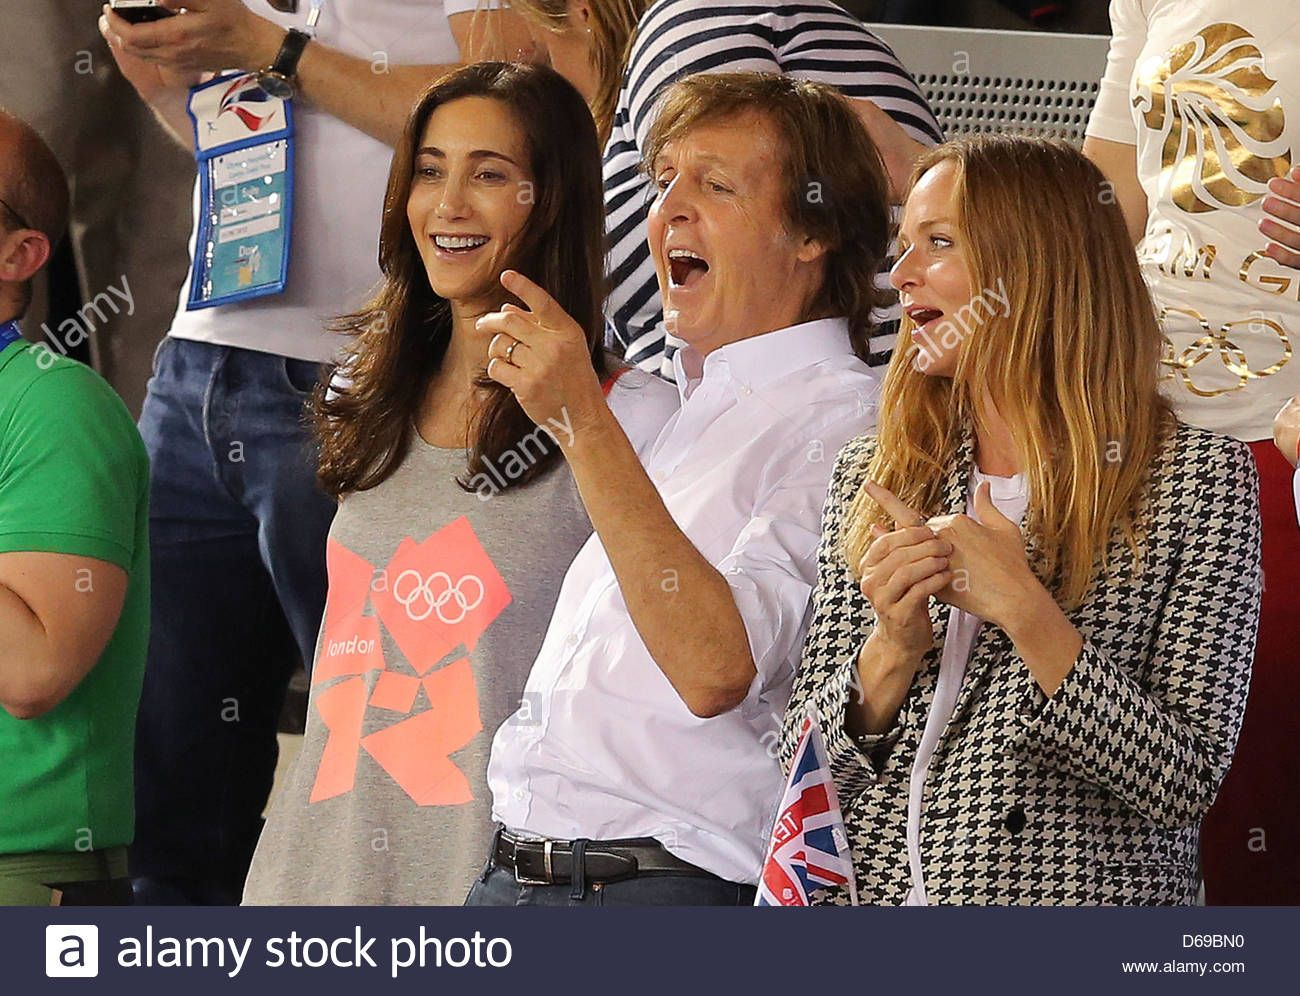 Download This Stock Image Sir Paul Mccartney C His Wife Nancy Shevell L And His Daughter Fashion Designer Stella Mccar Paul Mccartney Photo Stock Photos